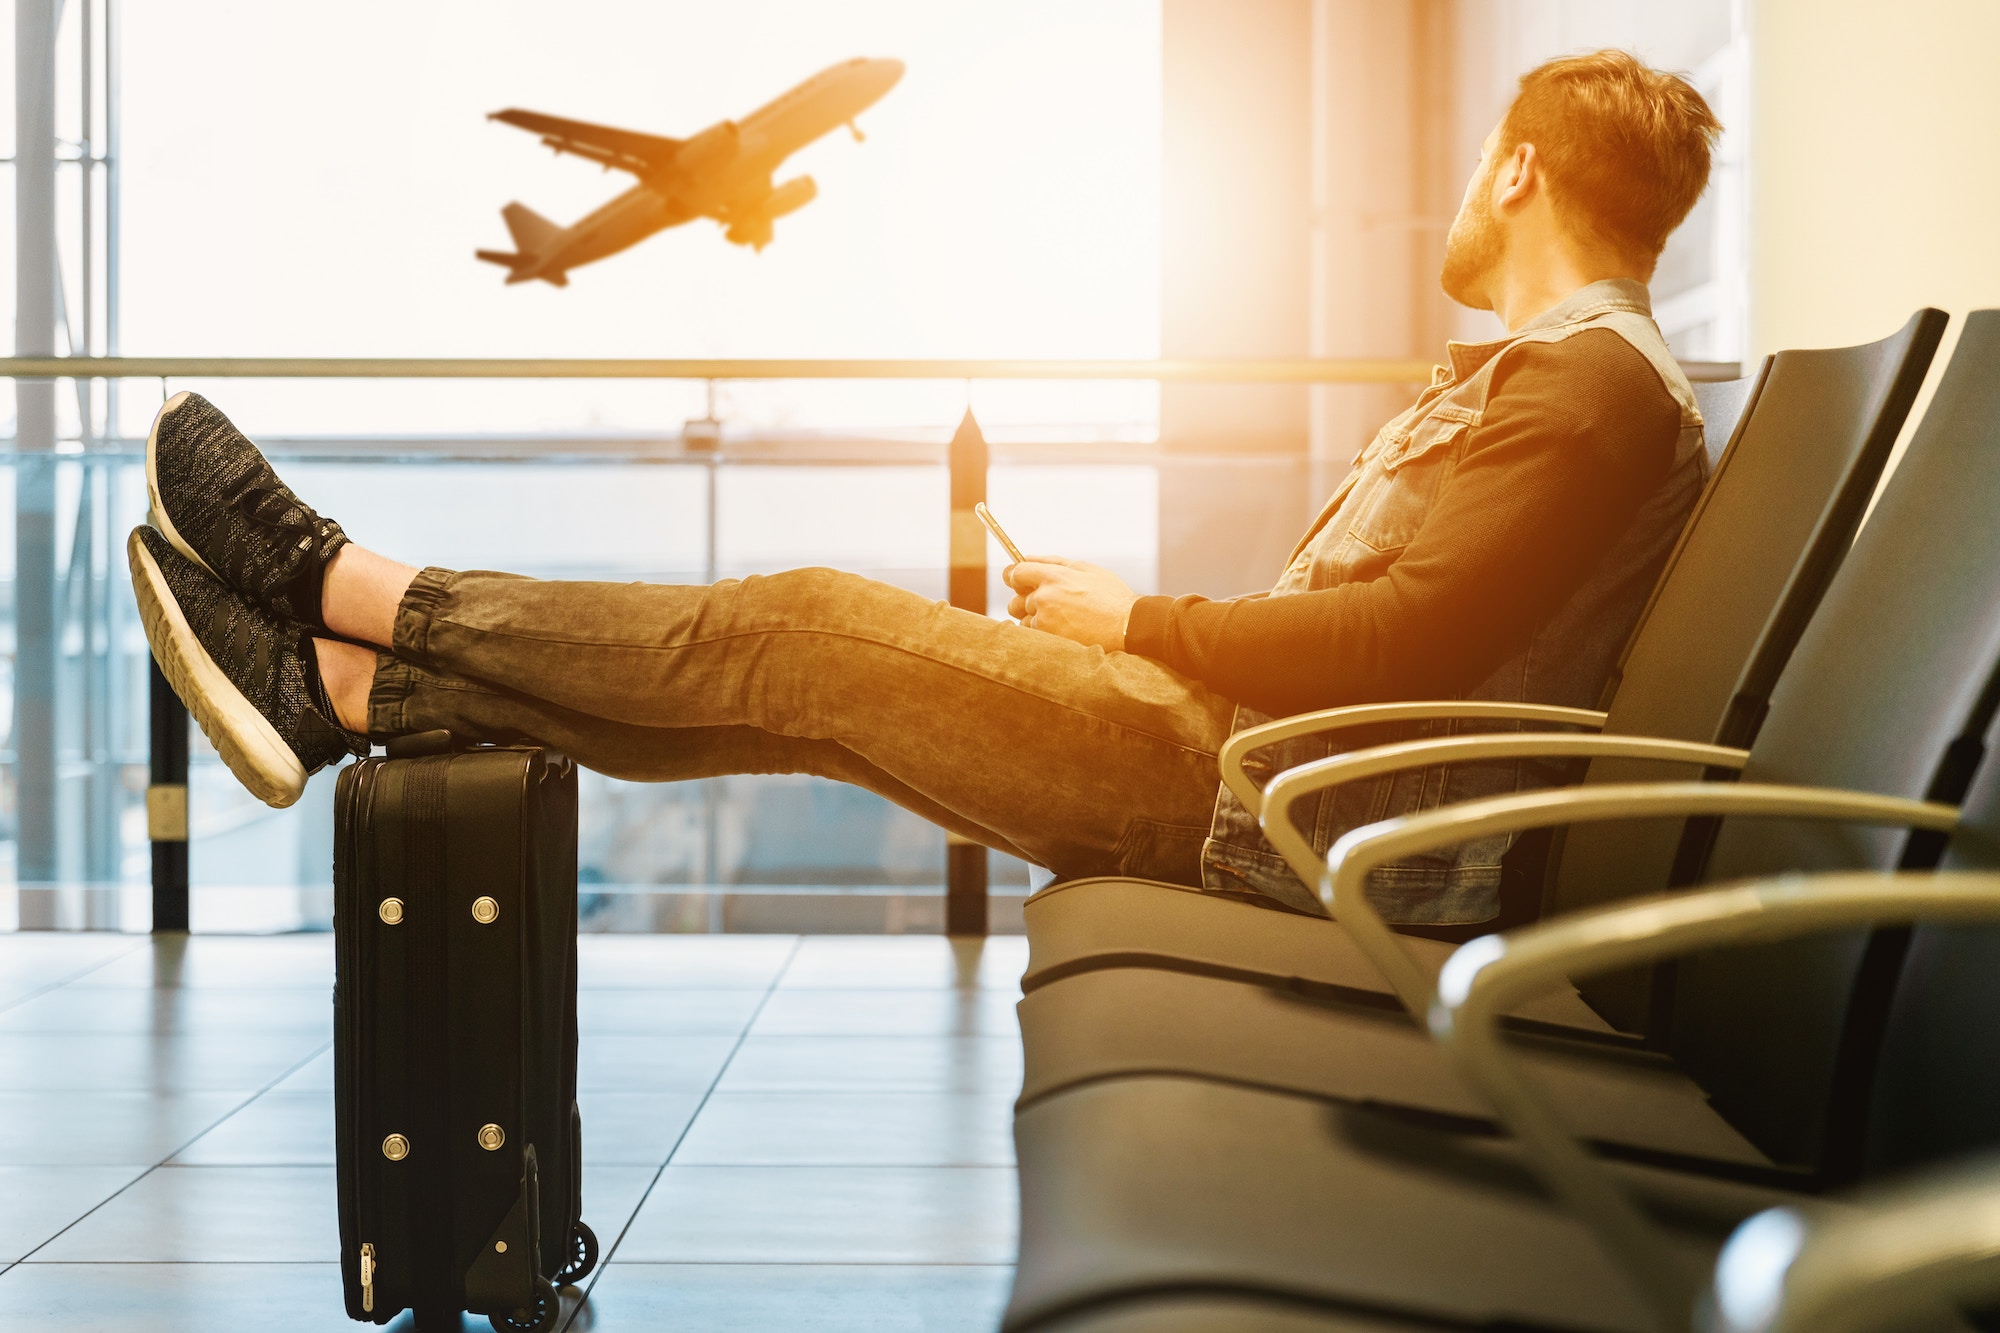 man sitting on gang chair with feet on luggage looking at airplane ready to go with travel health